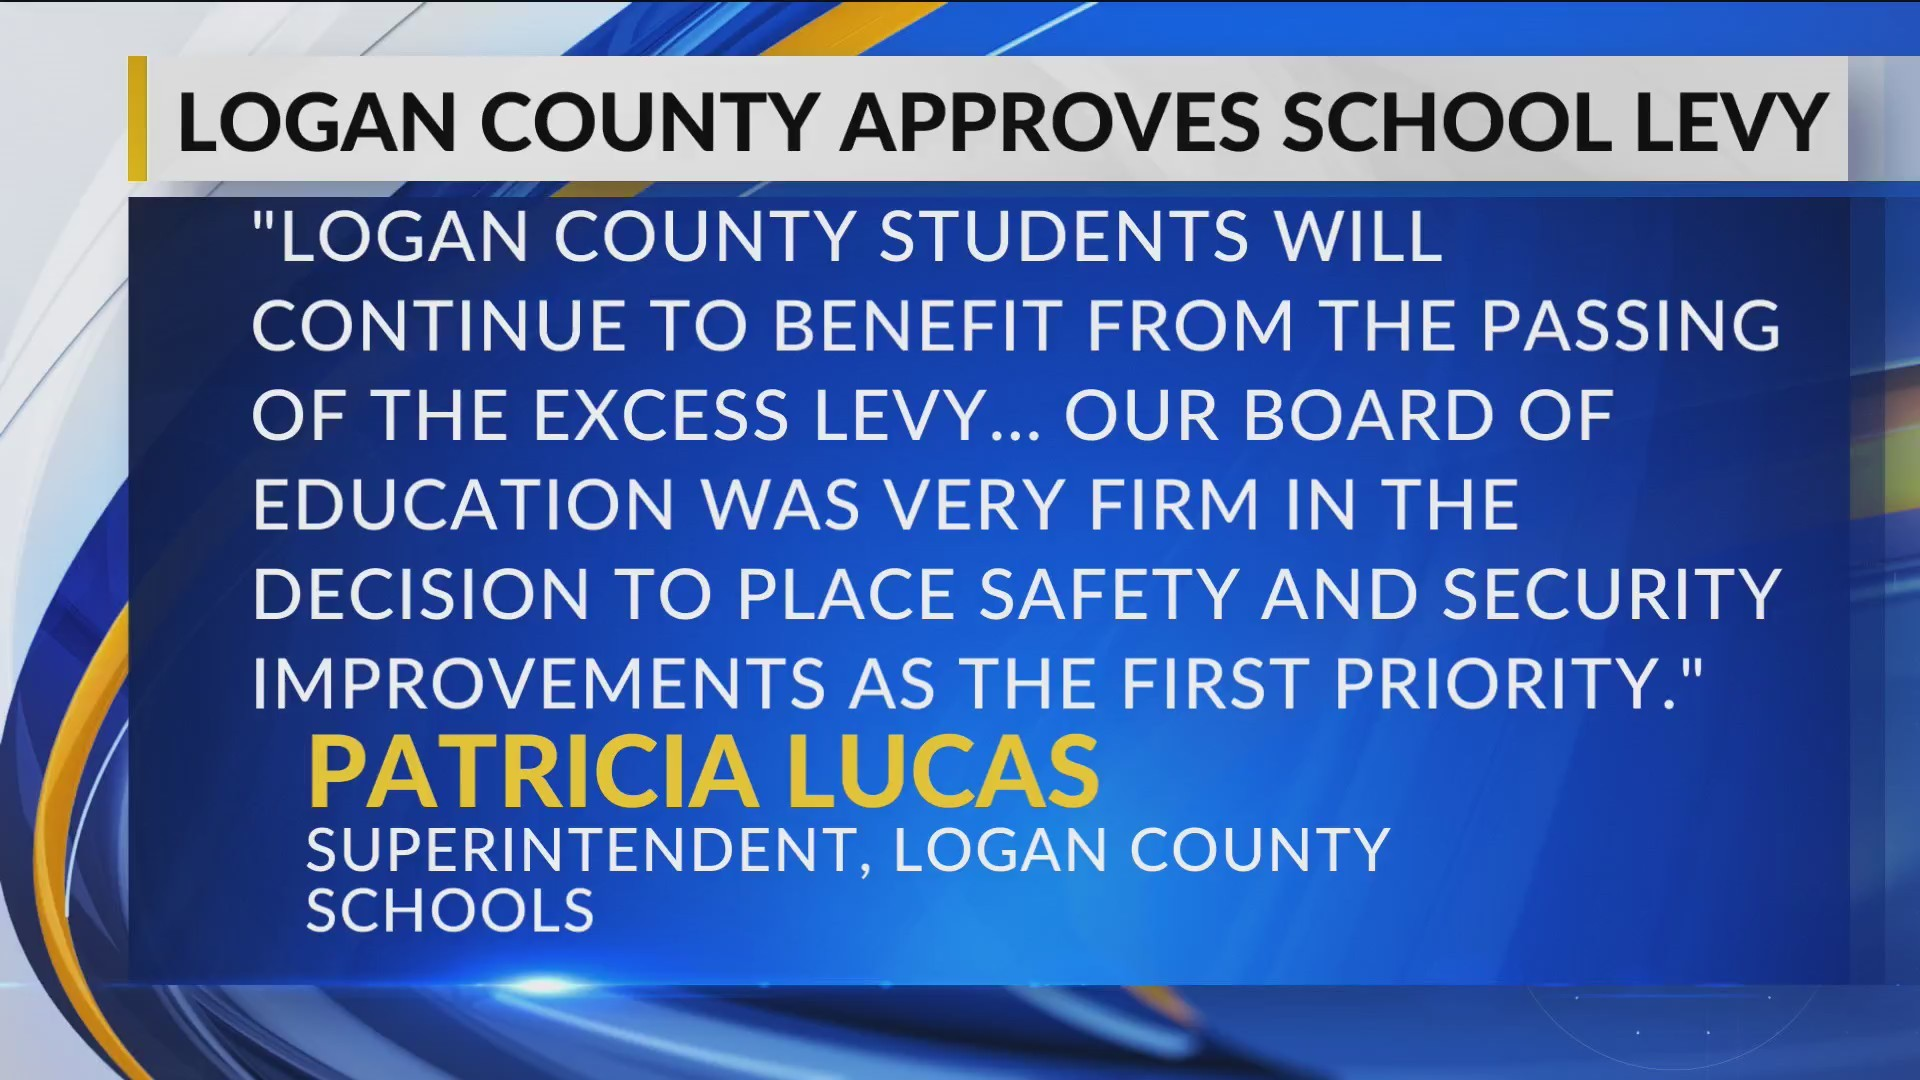 Logan County Voters Approve $44.5 Million School Levy